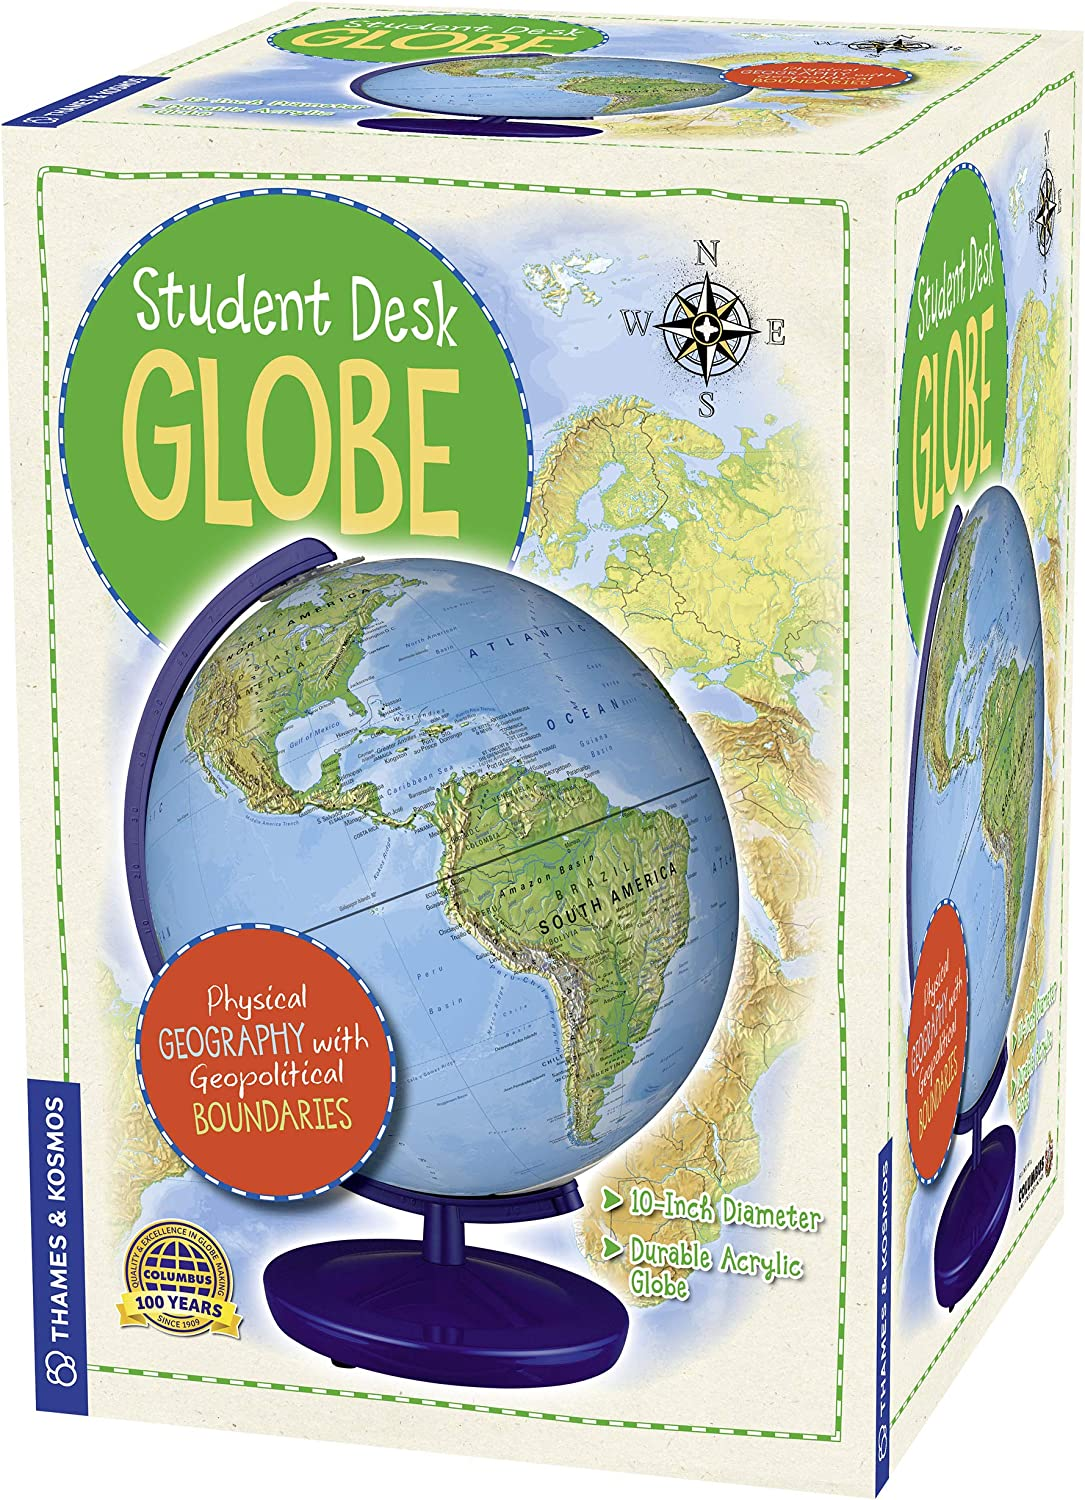 """Thames & Kosmos Student Desk Globe, 10"""" Diameter Acrylic Globe with Geopolitical Boundaries, Made in Germany by Columbus, World's Finest Globes & Maps"""